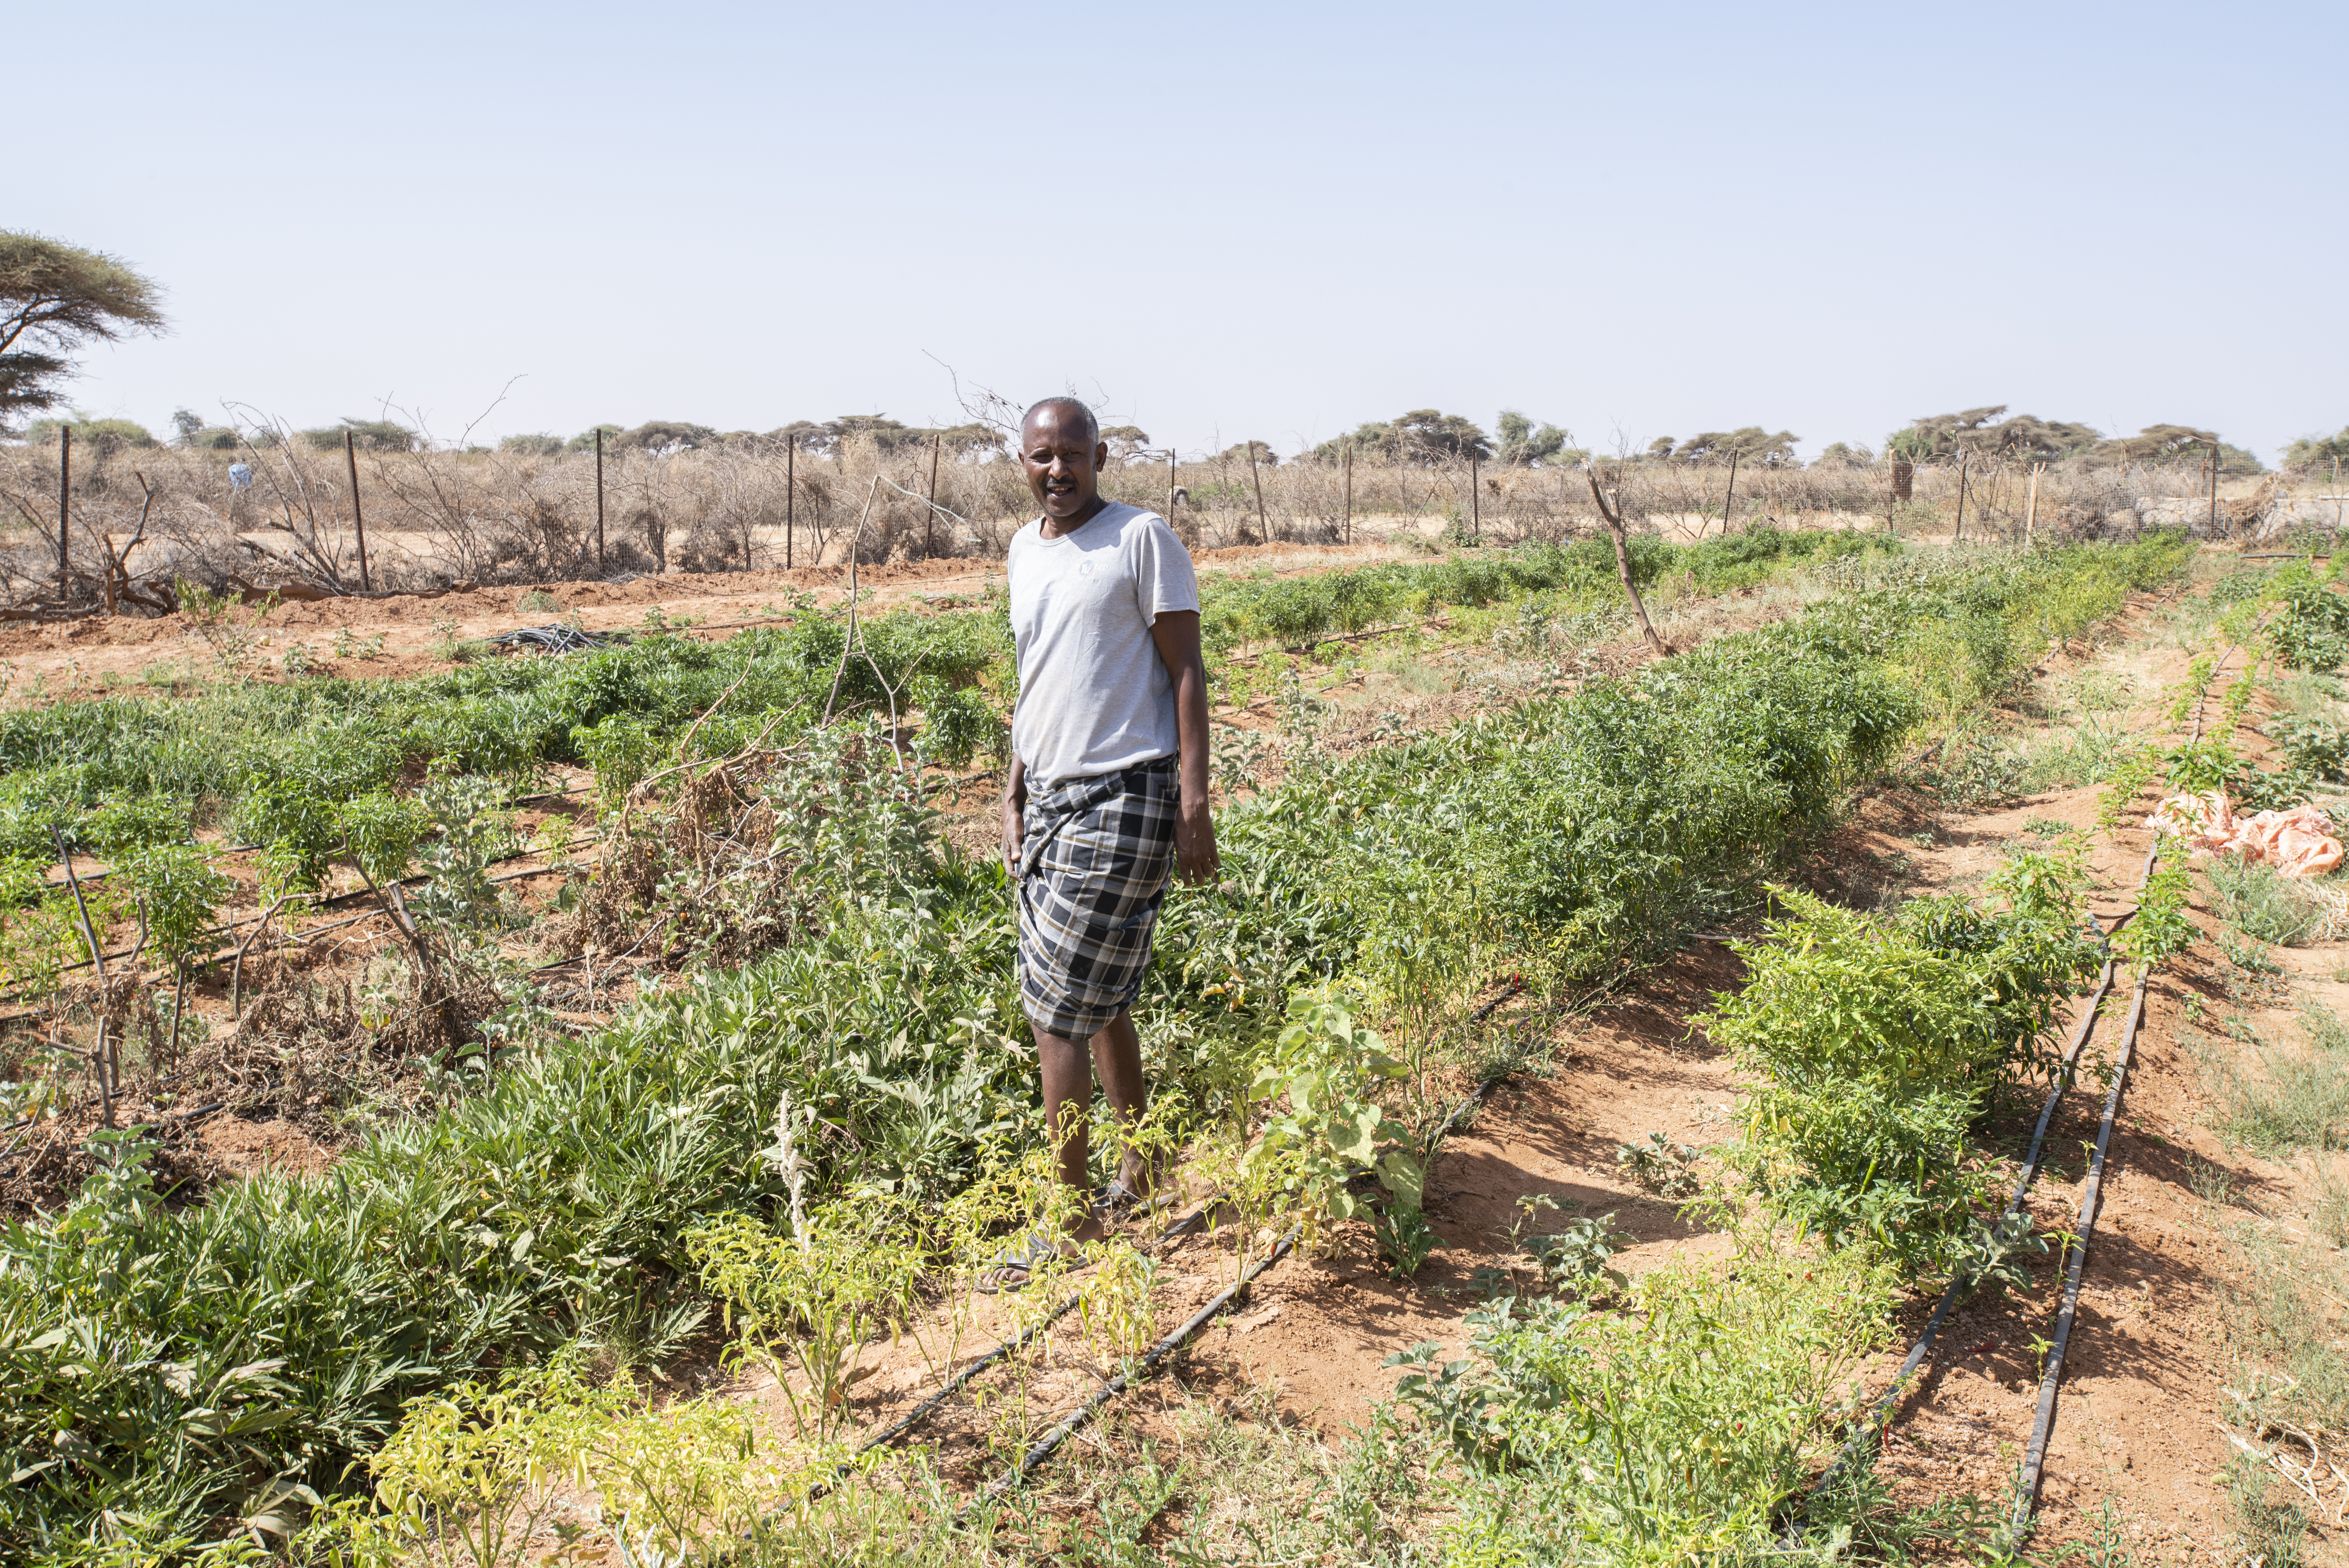 Abdi-Wali Hussein Haaji is  taking care of their vegetables garden. They benefited from World Vision good agriculture lessons, as well as seeds, tools, and water irrigation system connected to the earth dam.